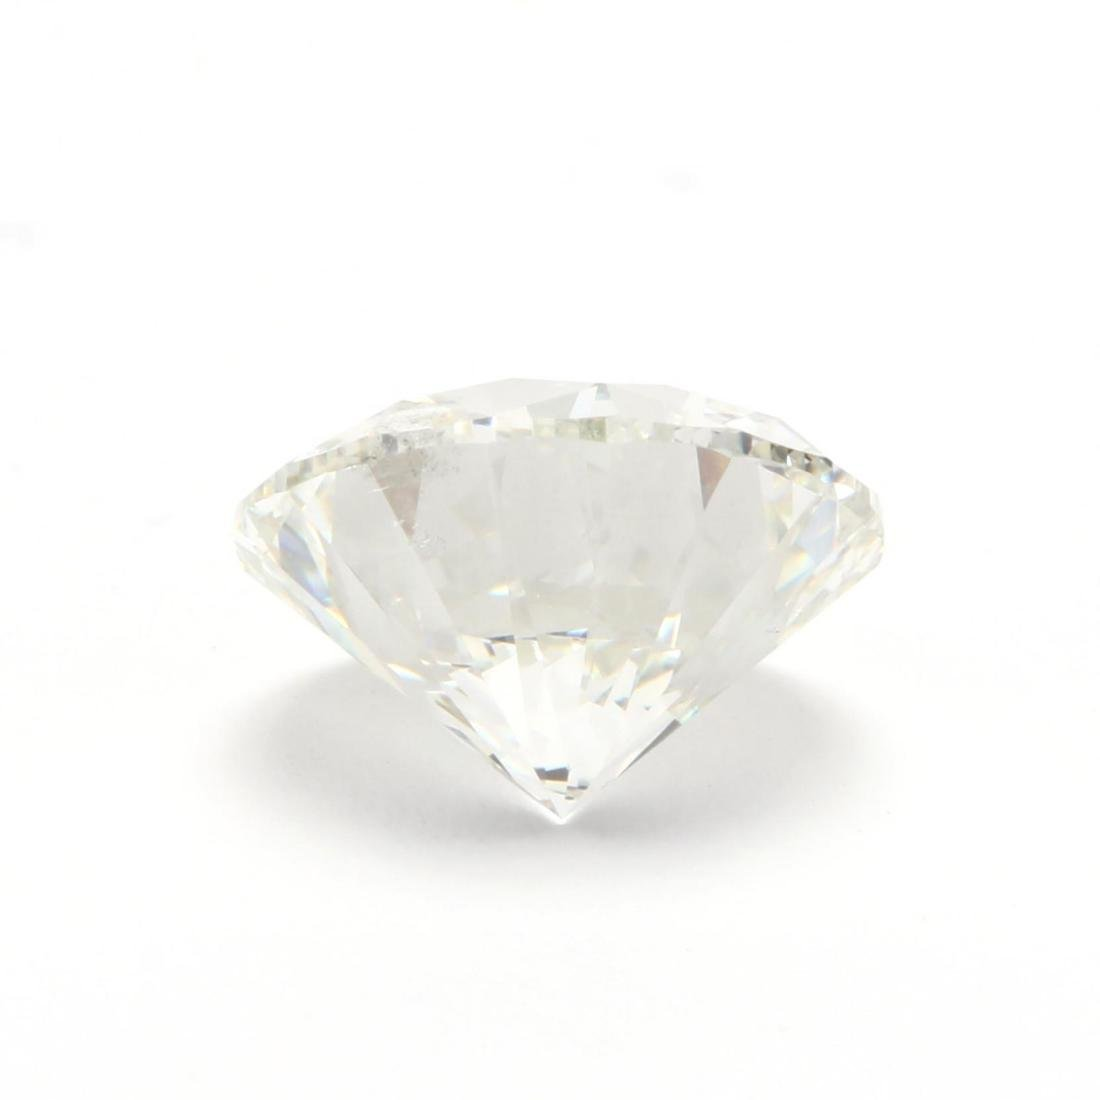 Unmounted Round Brilliant Cut Diamond and 14KT Gold - 4